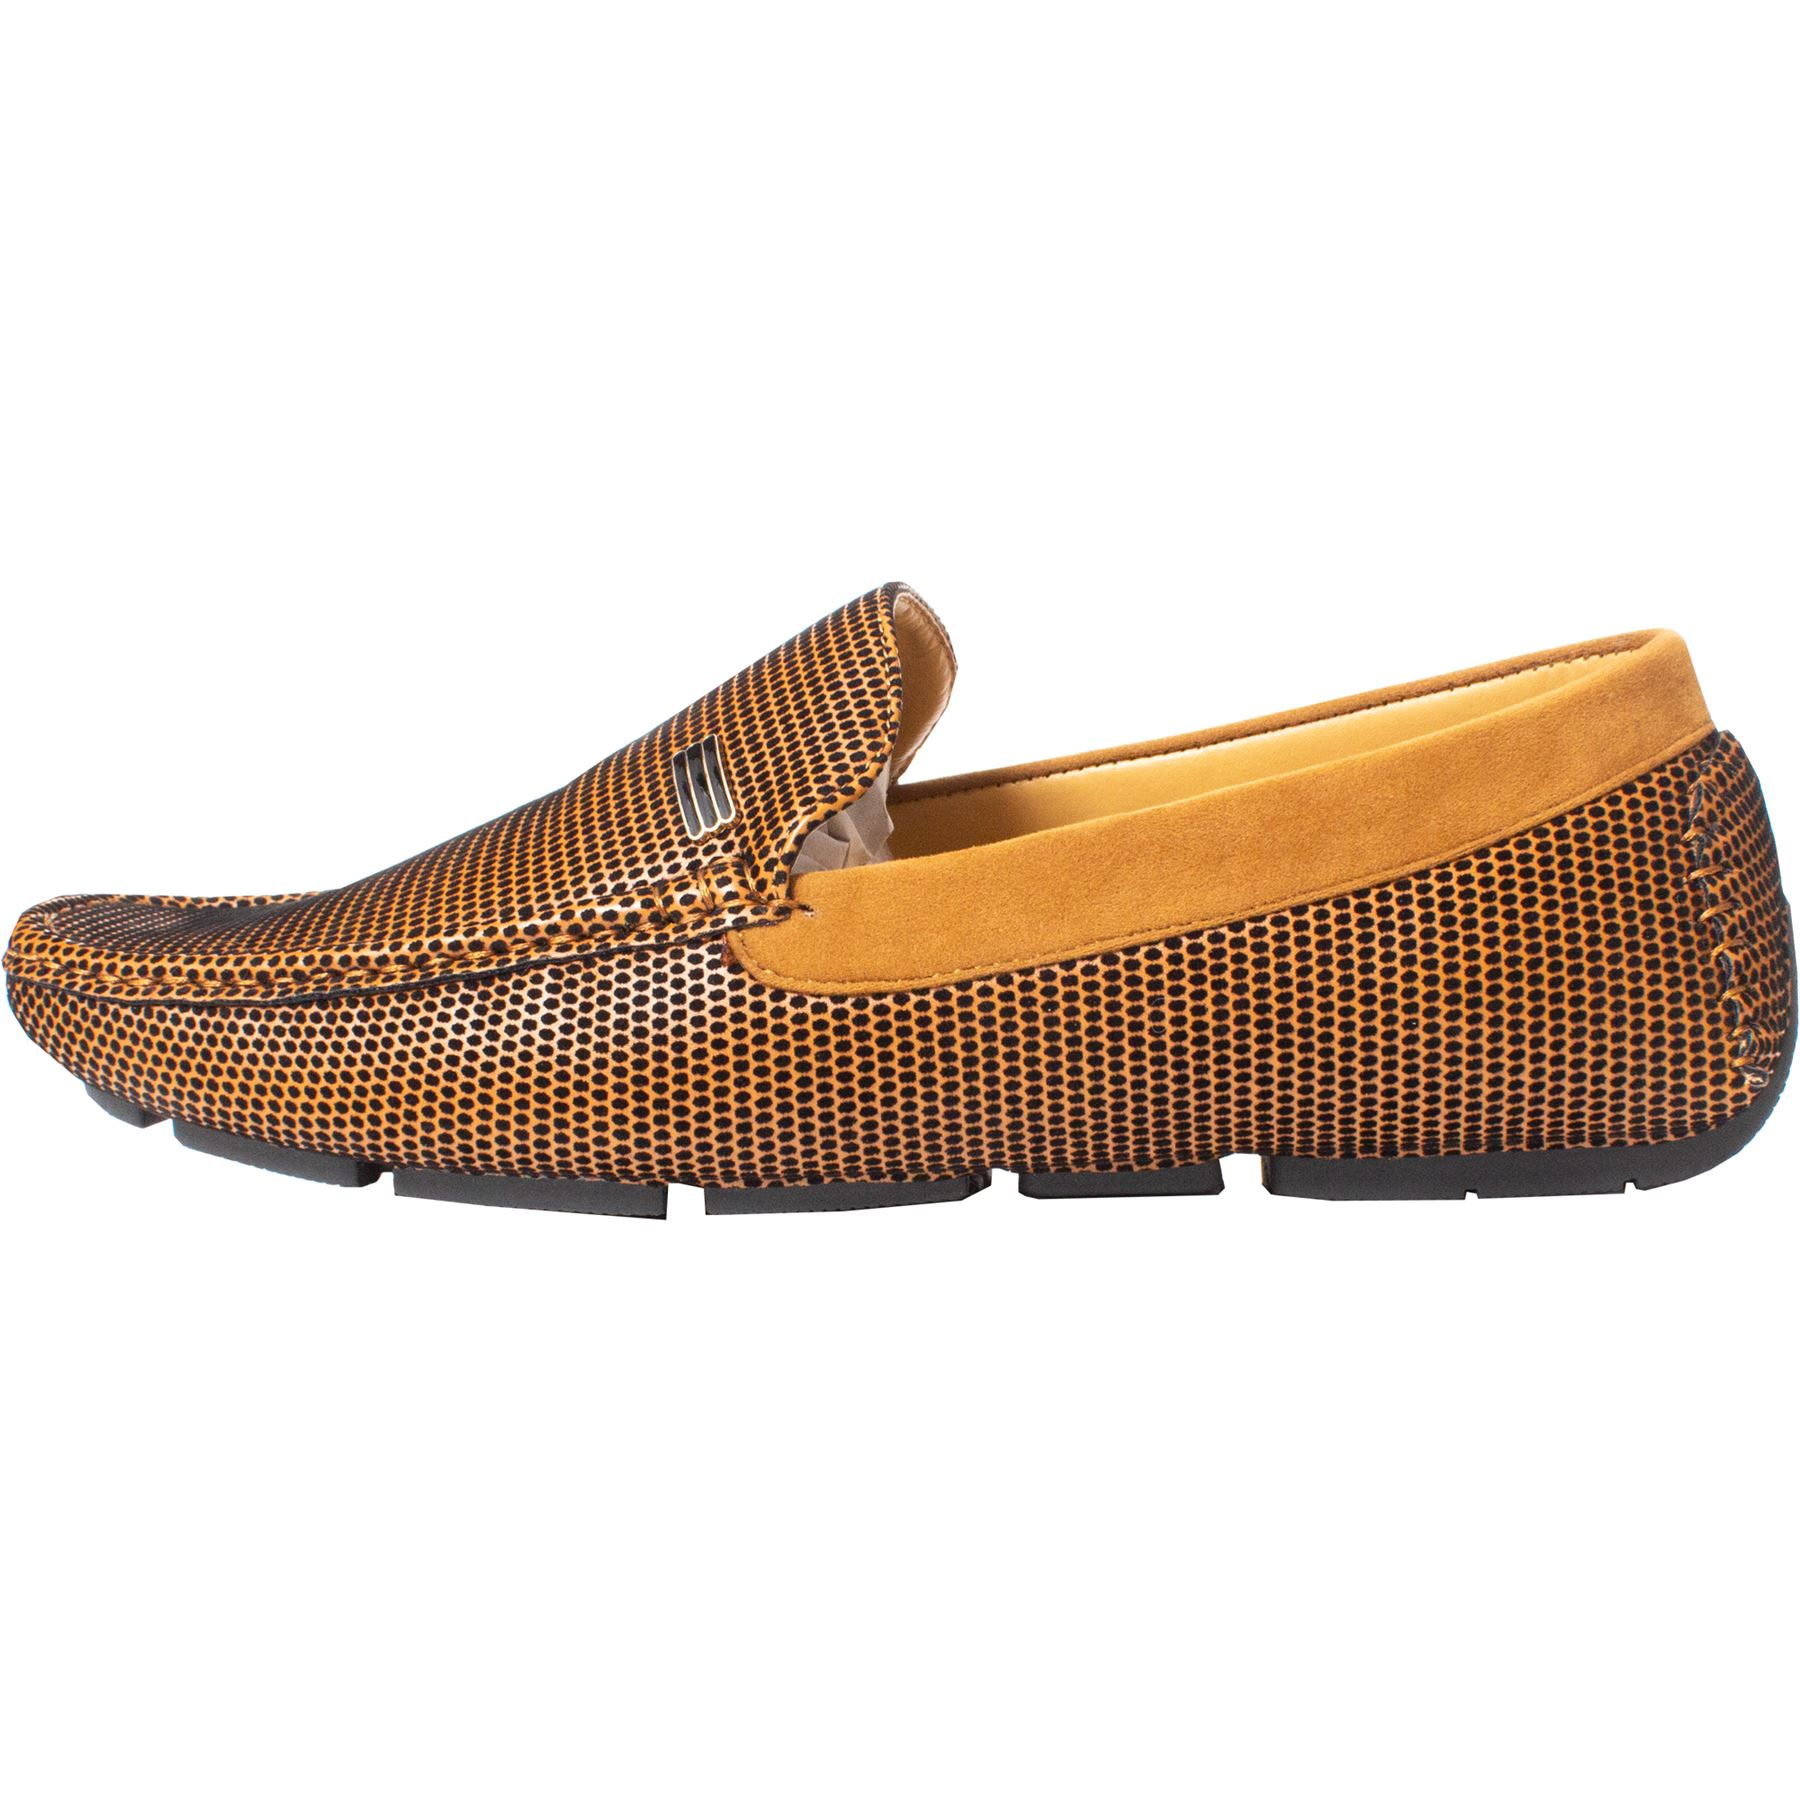 Mens-Slip-Ons-Shoes-Boat-Deck-Driving-Smart-Buckle-Moccasins-Suede-Look-Loafers thumbnail 105